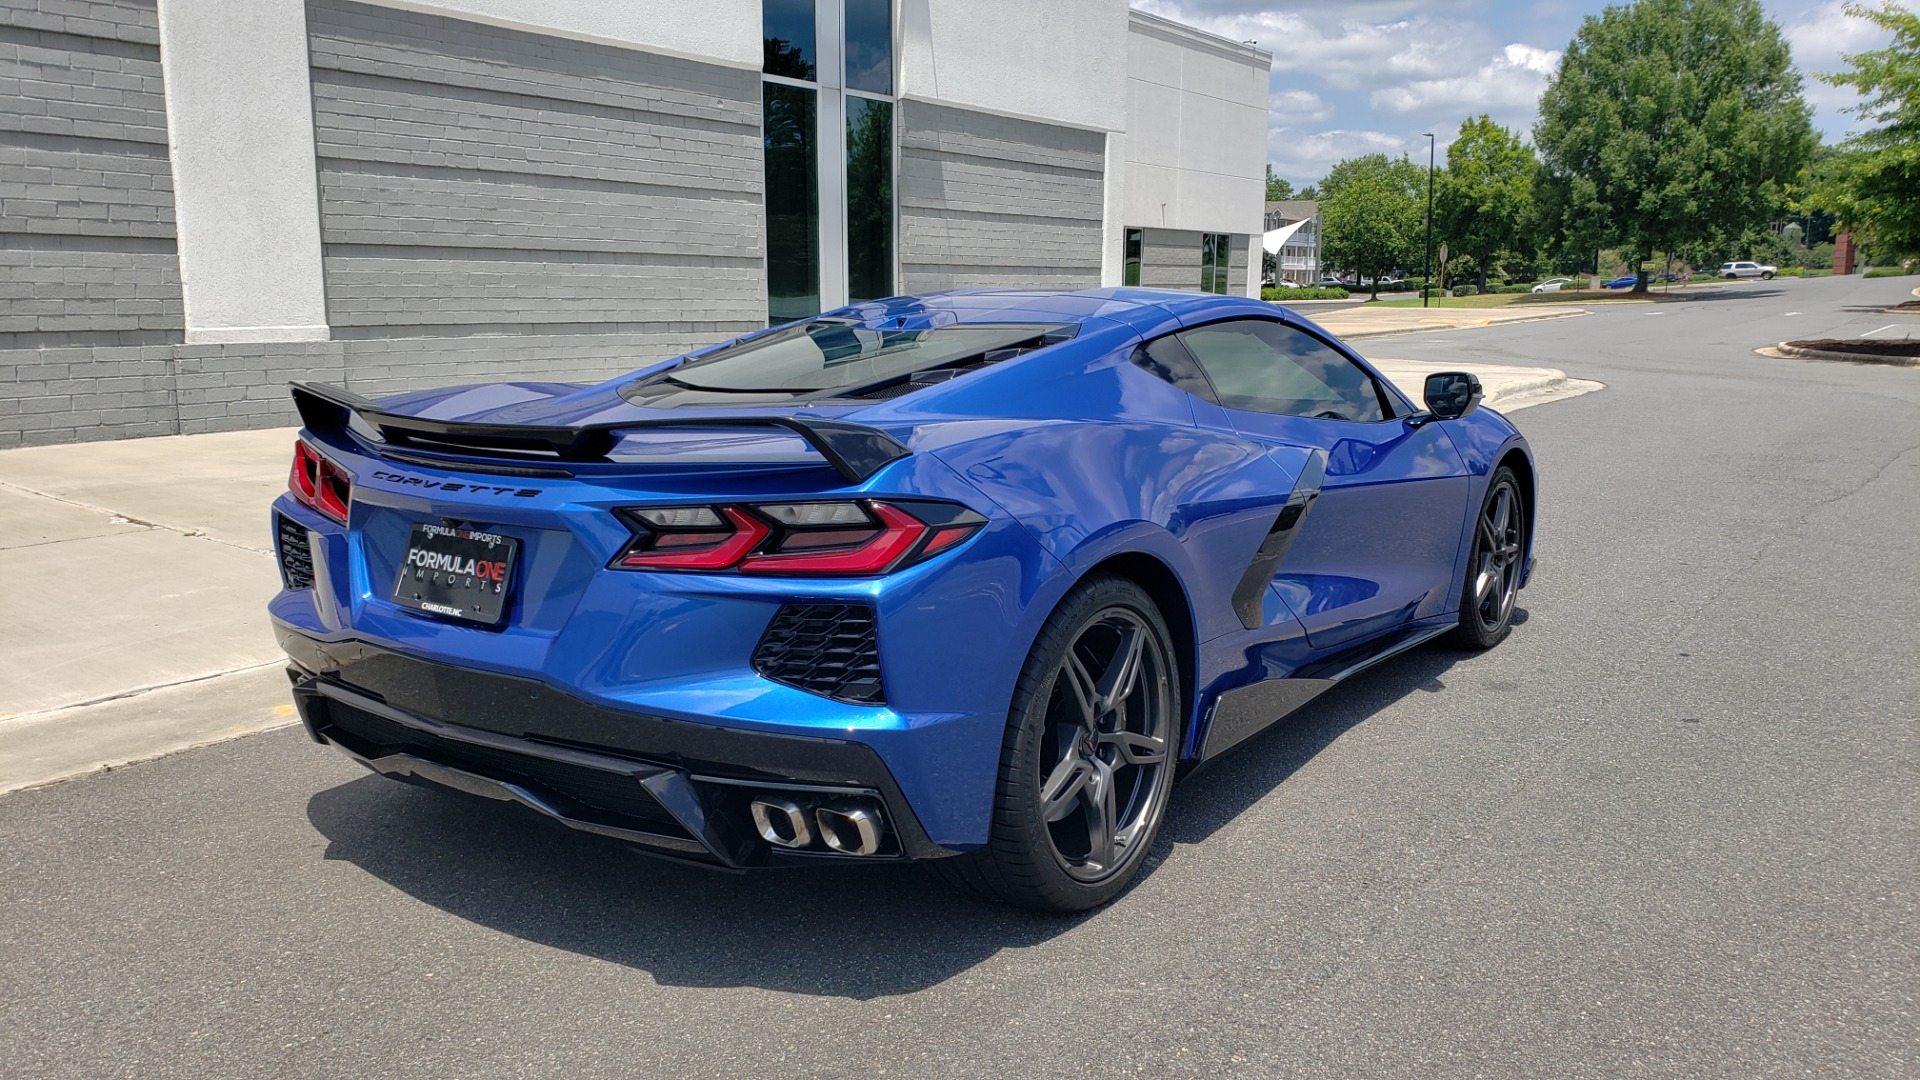 Used 2020 Chevrolet CORVETTE C8 STINGRAY COUPE 2LT / PERF & Z51 PKG / NAV / BOSE / 8-SPD AUTO / REARVIEW for sale Sold at Formula Imports in Charlotte NC 28227 2